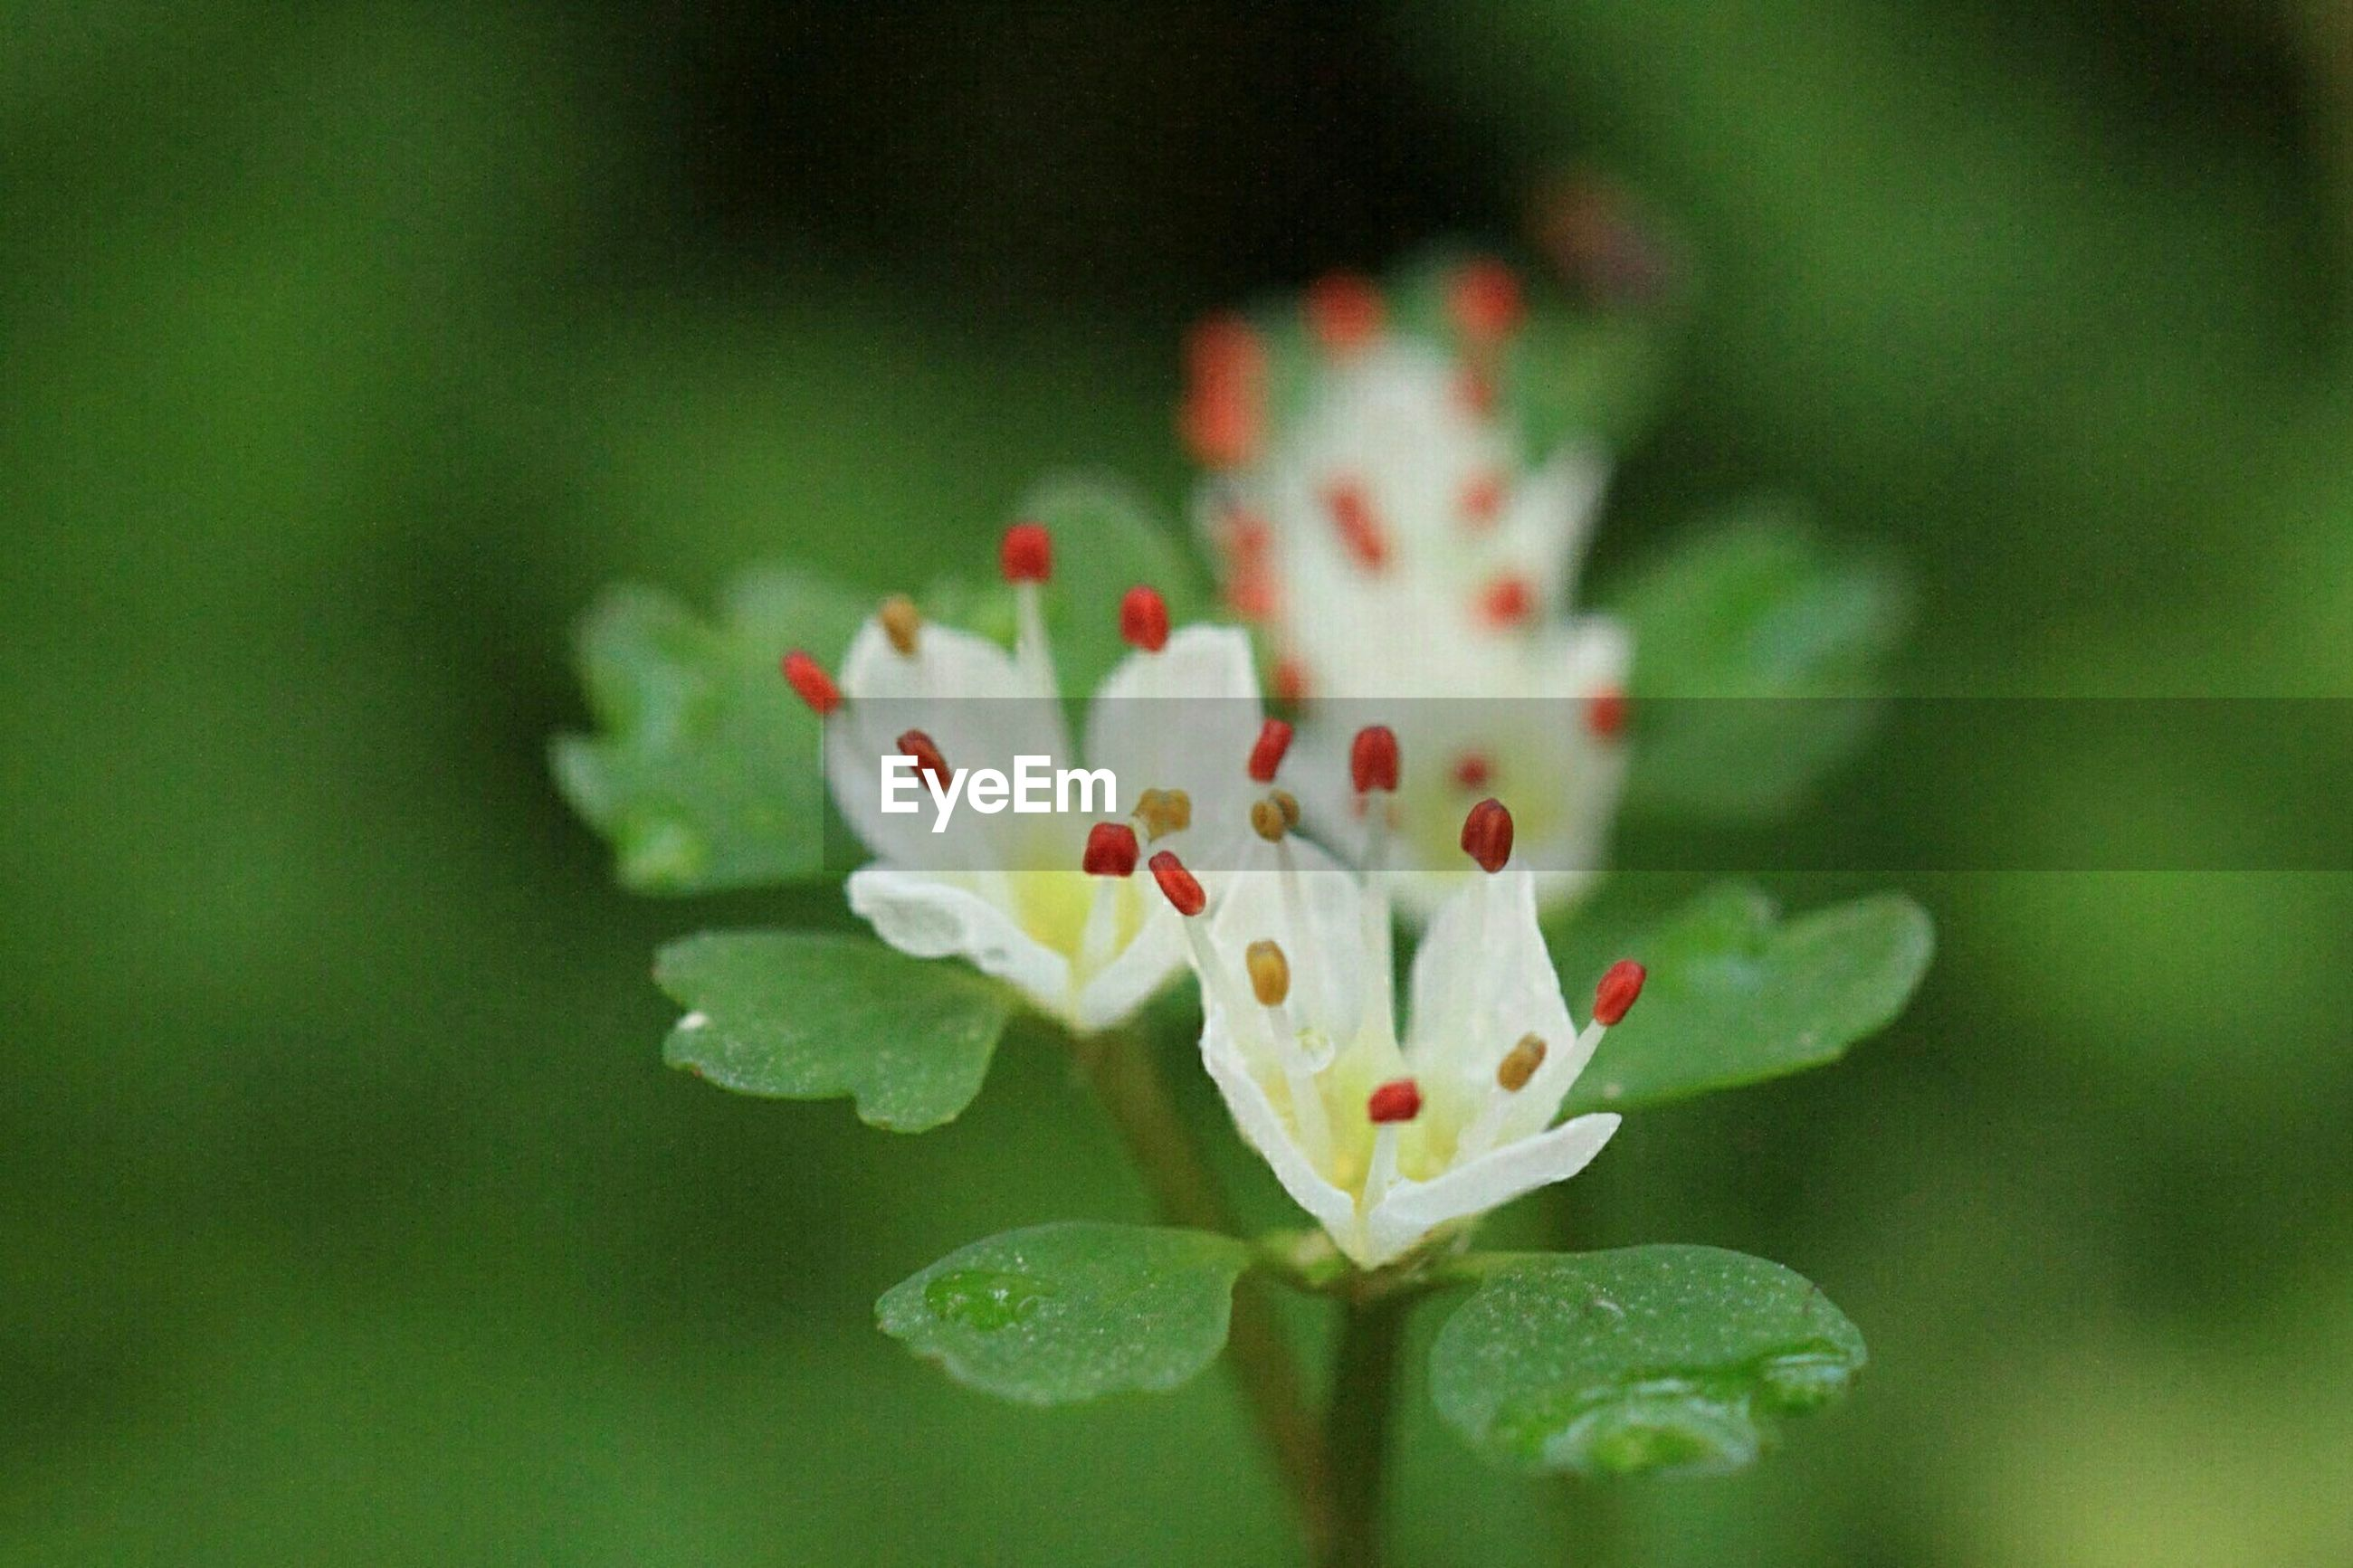 flower, petal, freshness, fragility, flower head, growth, close-up, beauty in nature, focus on foreground, blooming, nature, plant, selective focus, in bloom, bud, single flower, stem, leaf, blossom, white color